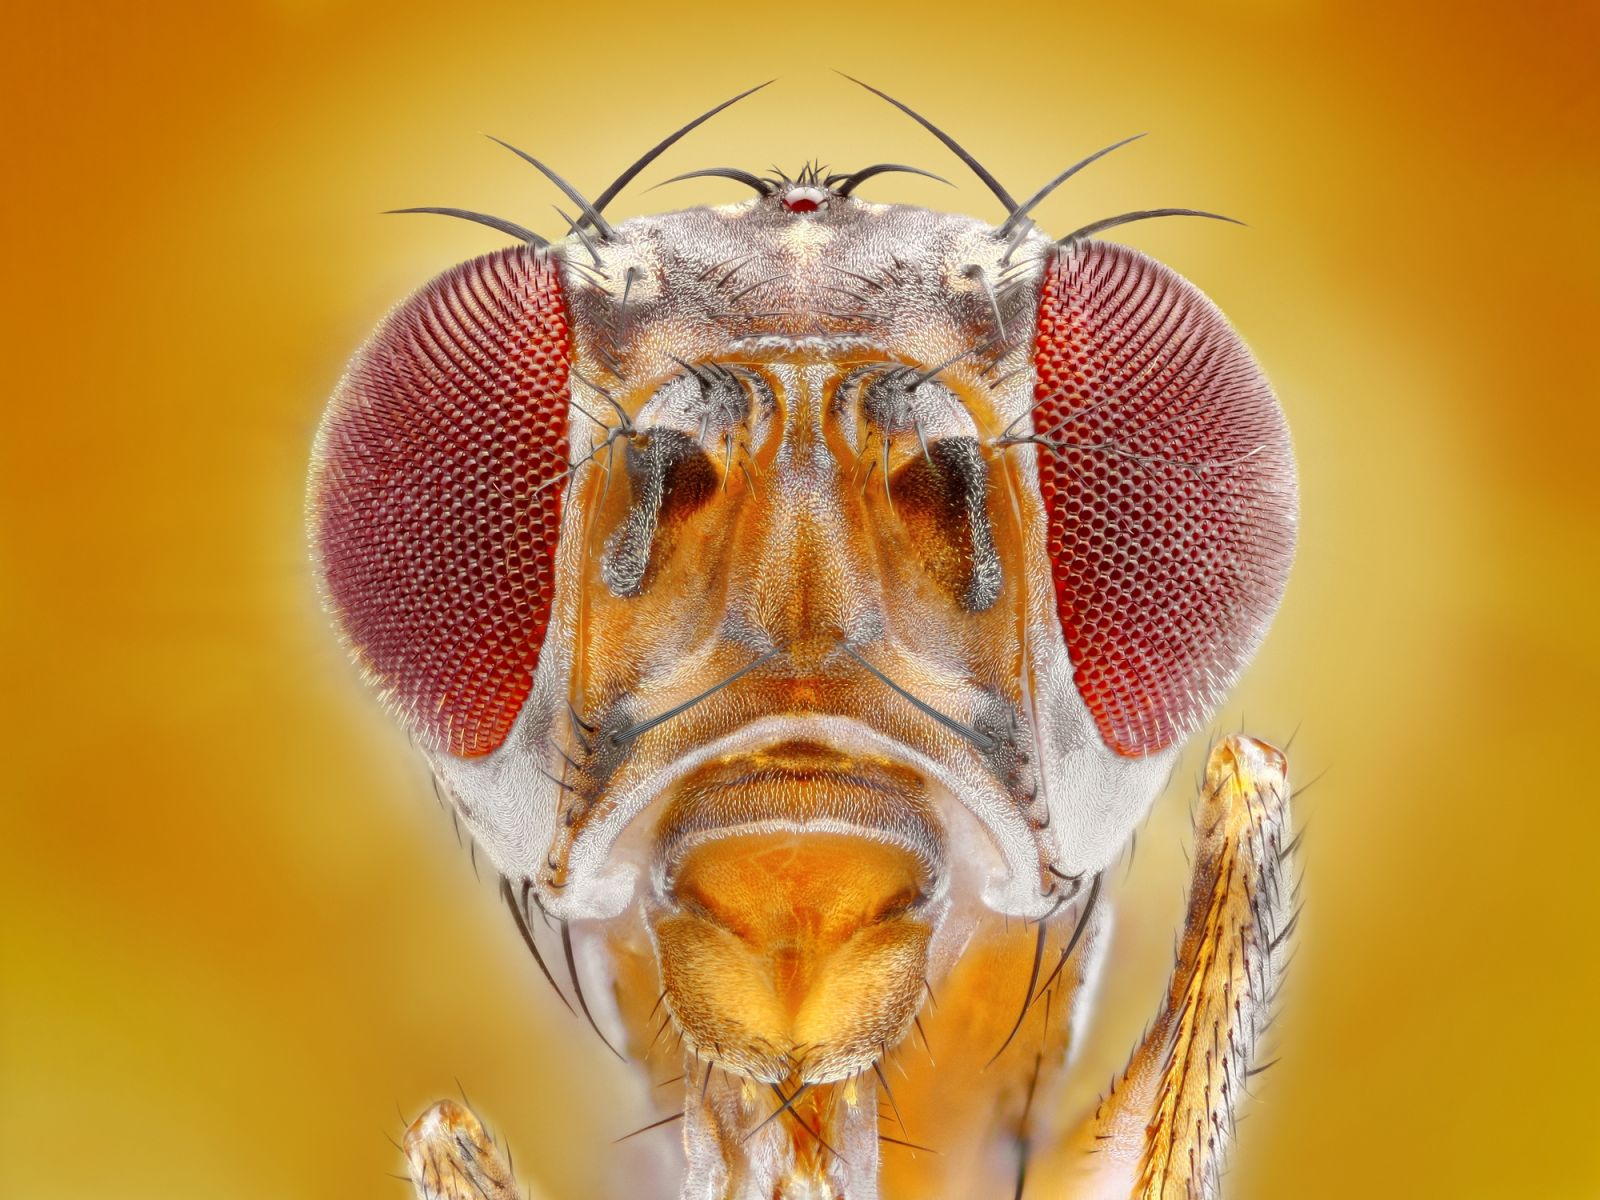 Close up of a fruit fly head.